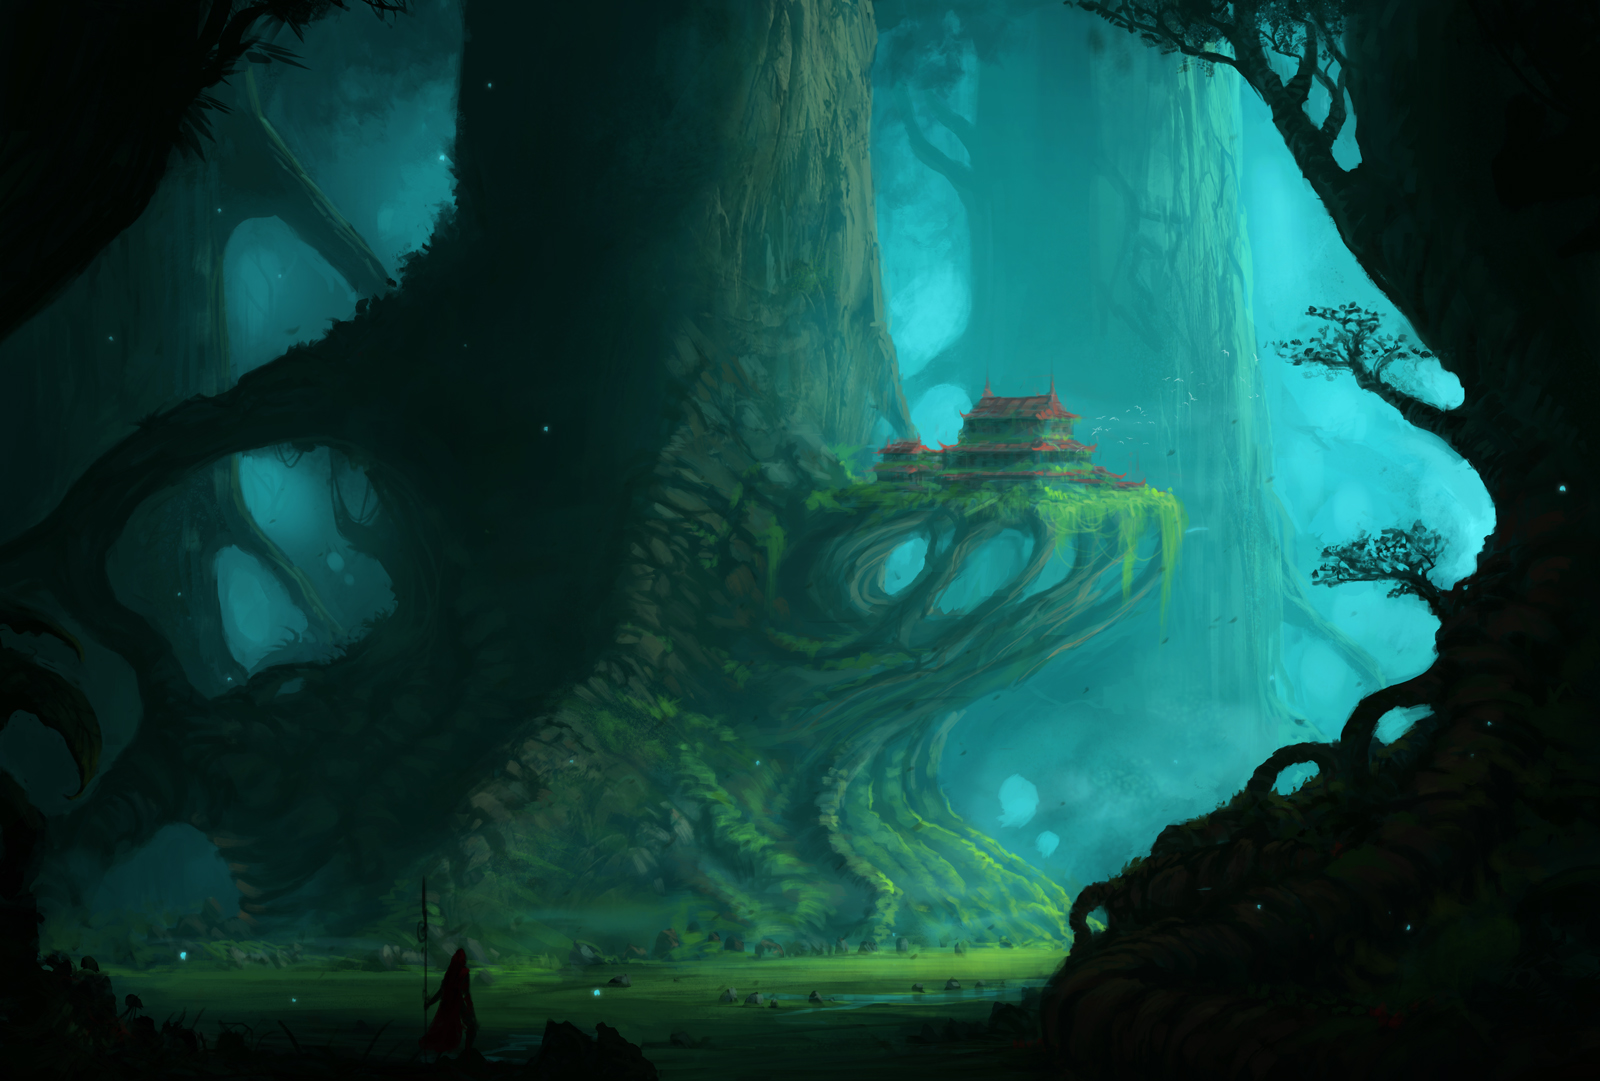 The Colossal Trees by JJcanvas